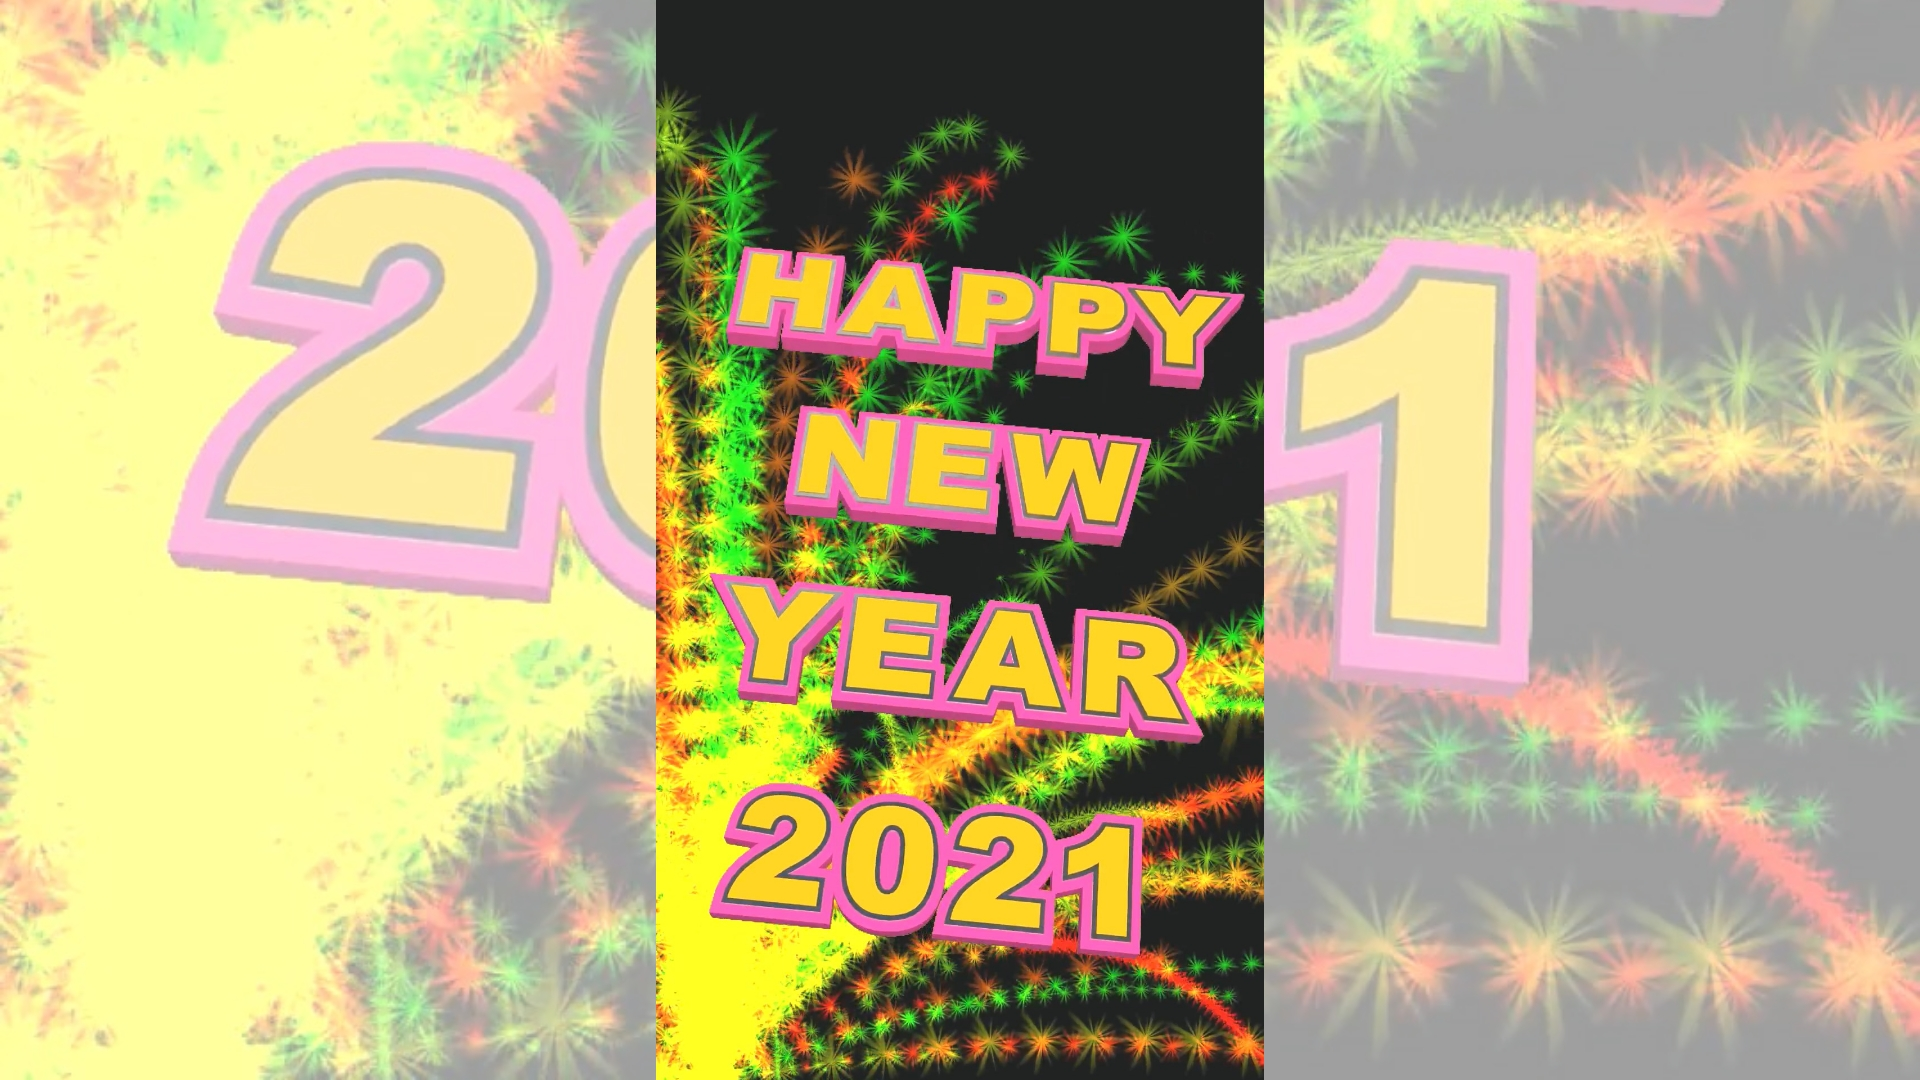 Countdown video for New Year 2021.